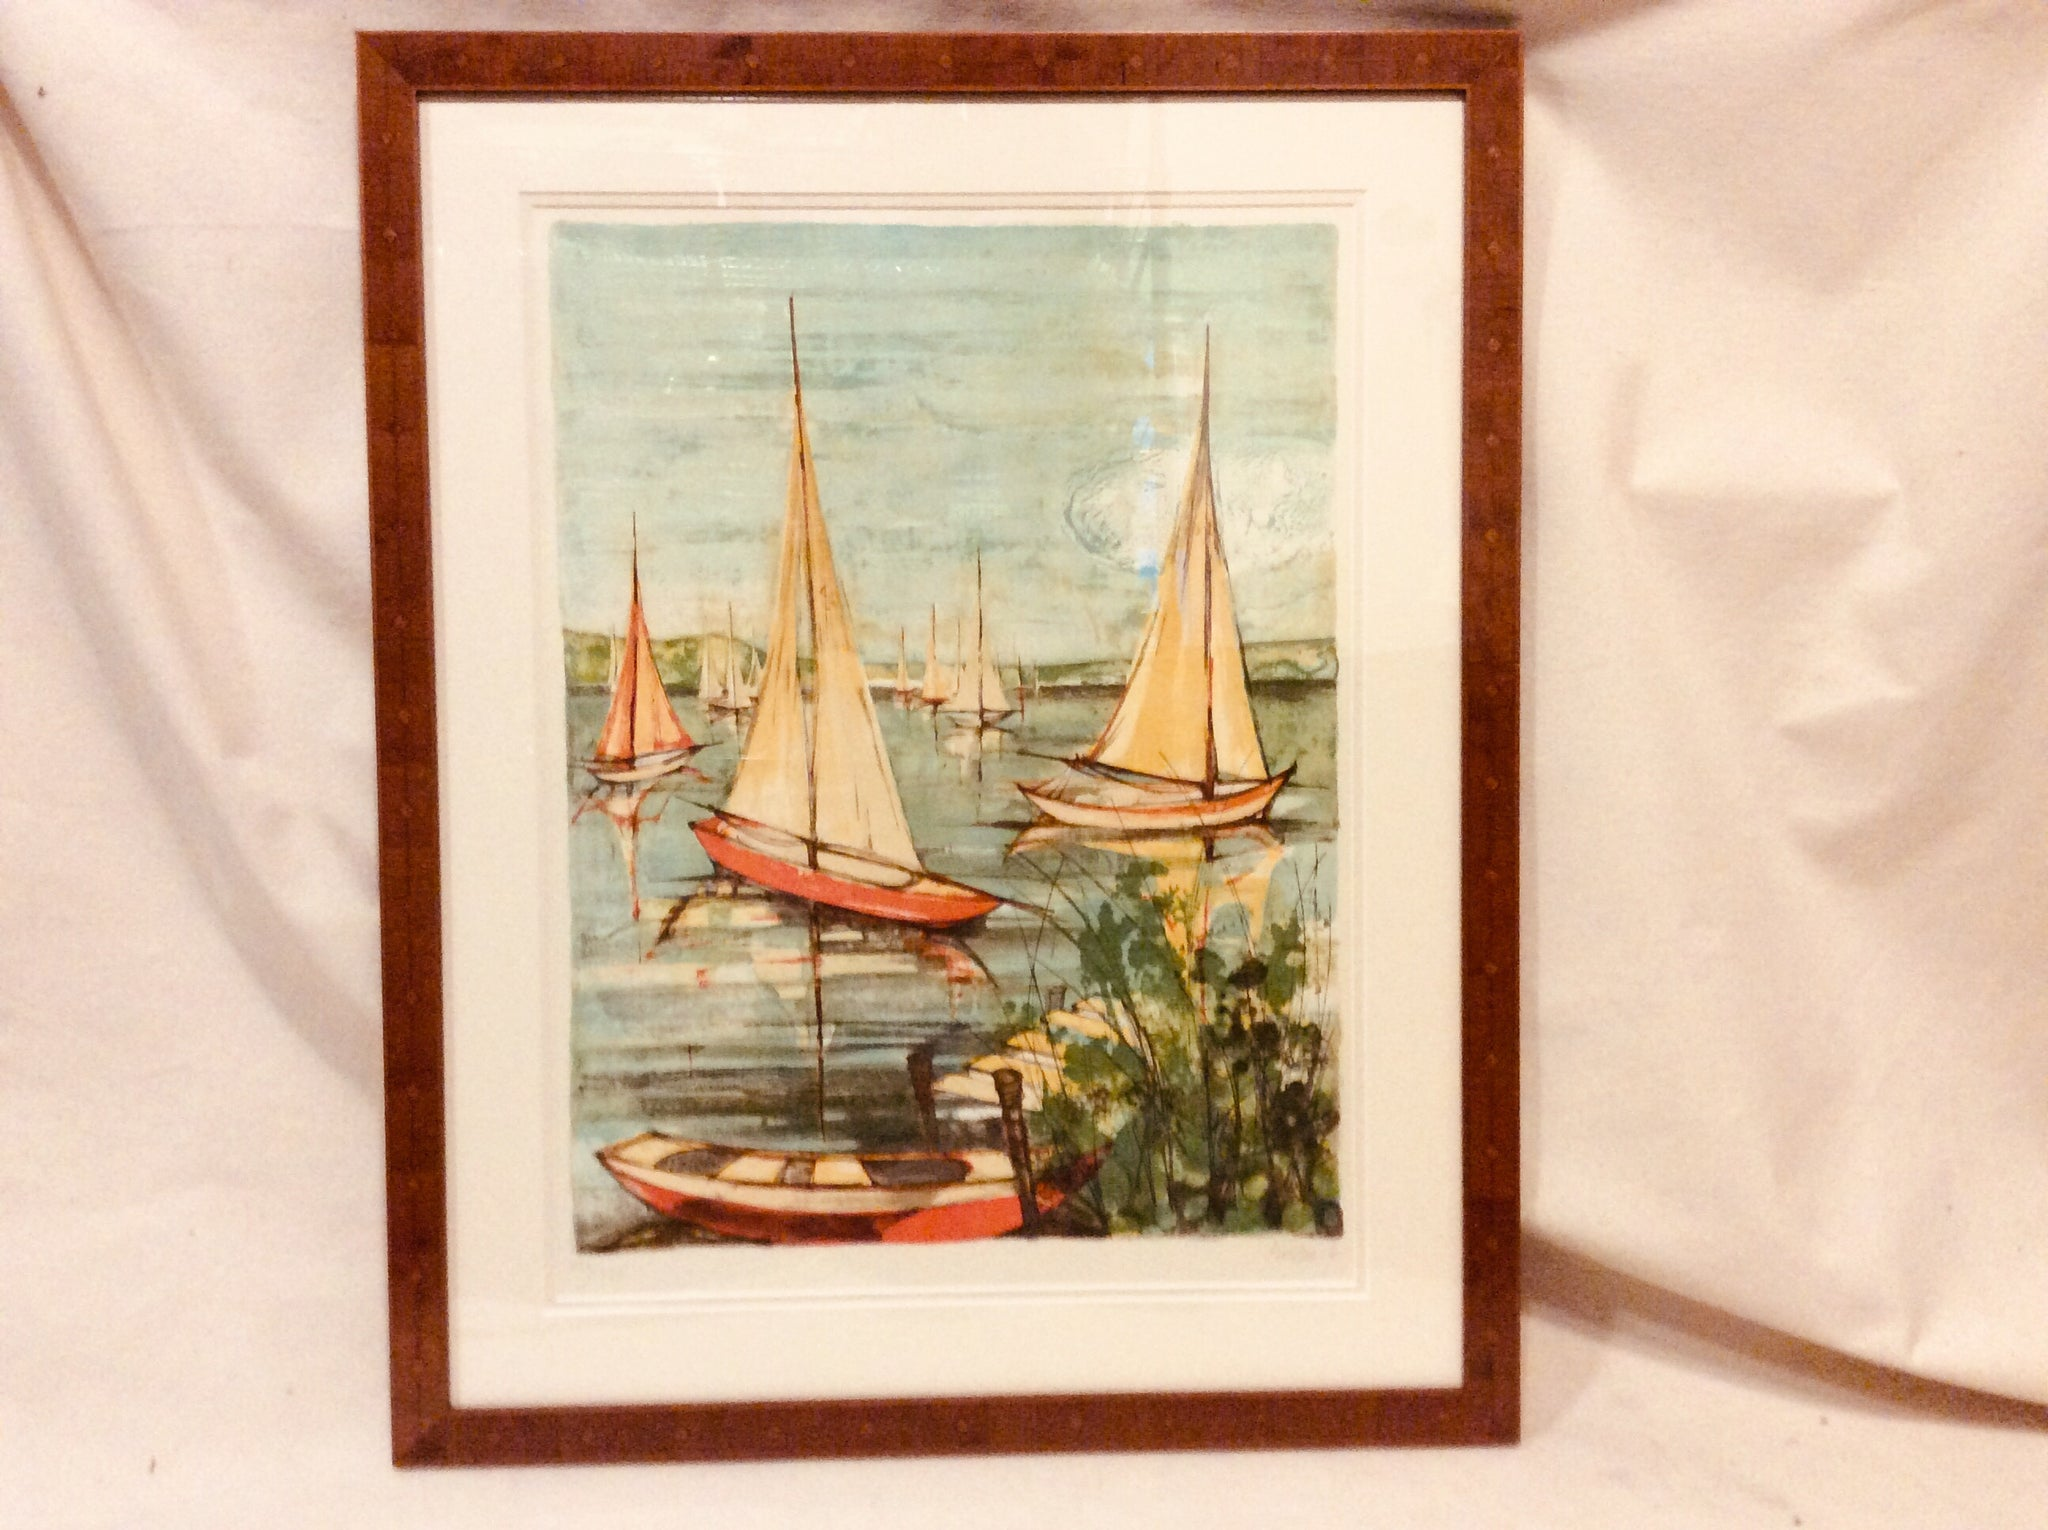 Sailboats in the Harbor, Limited Edition Lithograph, Framed - Annapolis Maritime Antiques